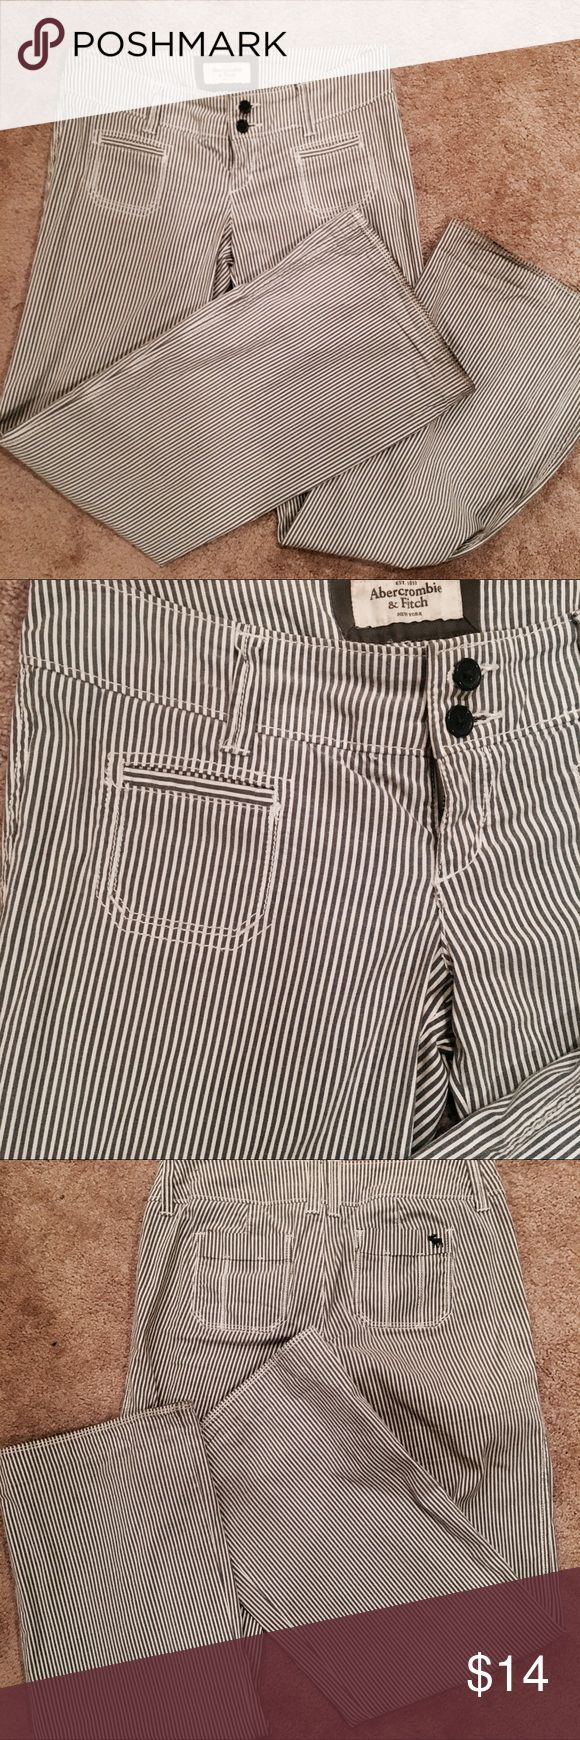 Abercrombie and Fitch Pinstripe Trousers Wide leg. Cotton blend. Abercrombie & Fitch Pants Wide Leg